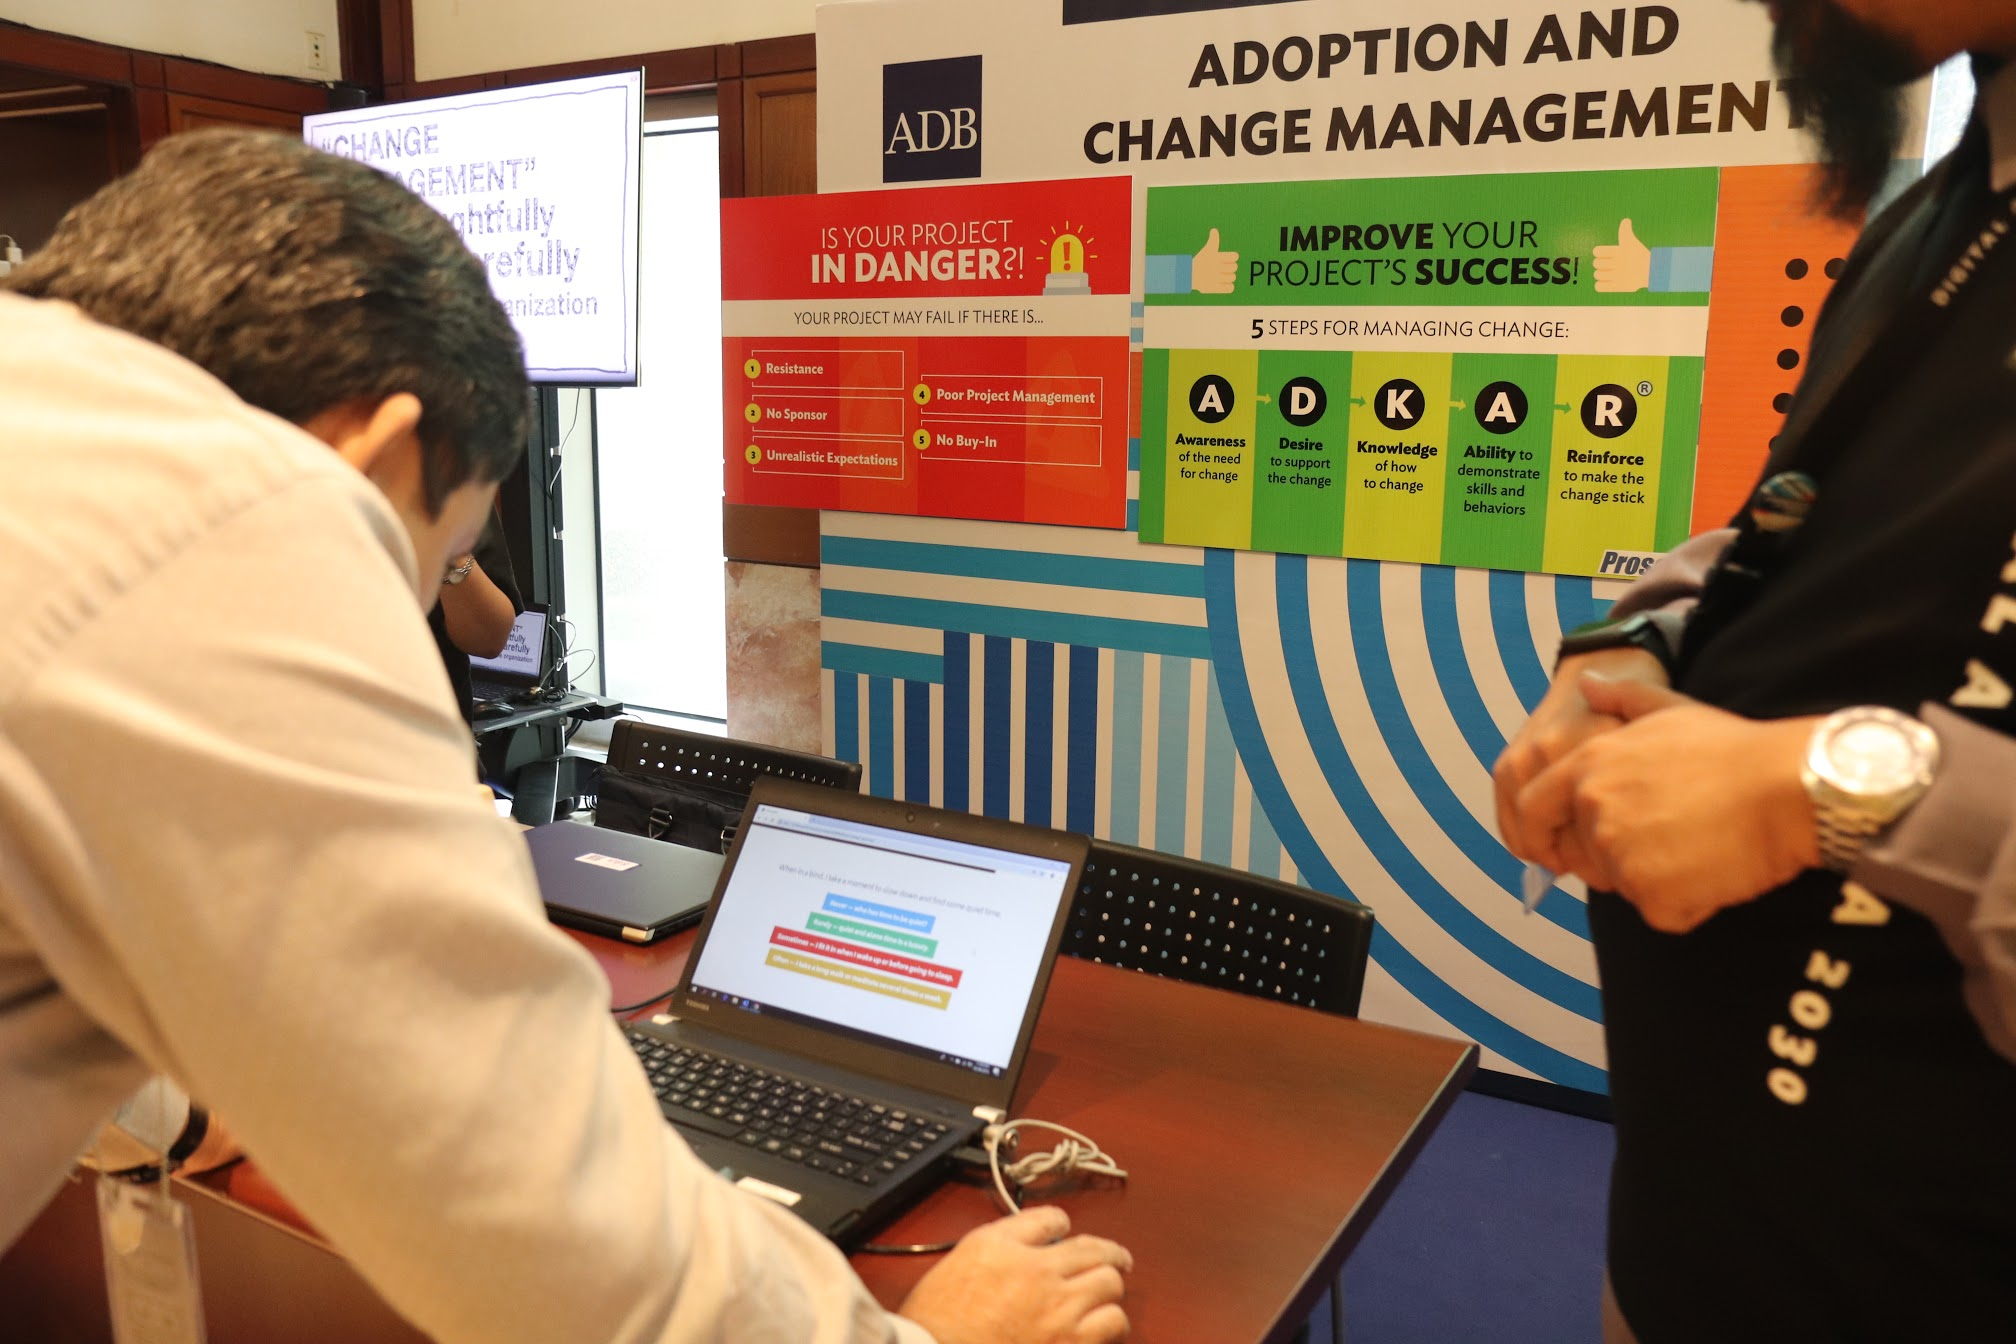 """11:14 a.m. - Take the """"What's your Change Persona Quiz"""" at the Adoption and Change Management booth!"""